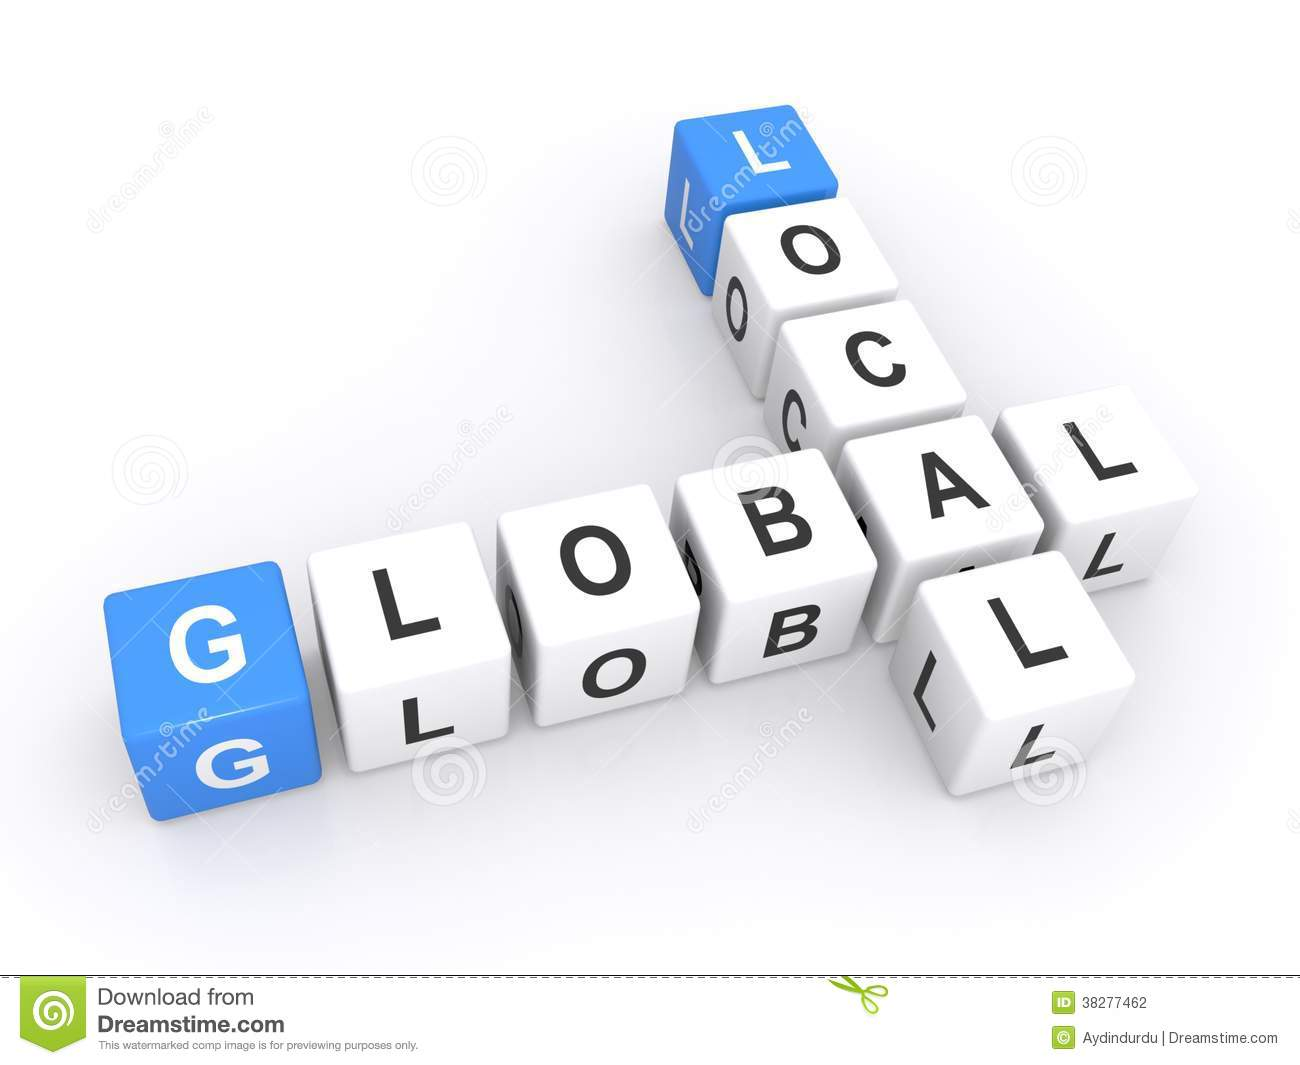 ... shape spelling local global, isolated on a white studio background